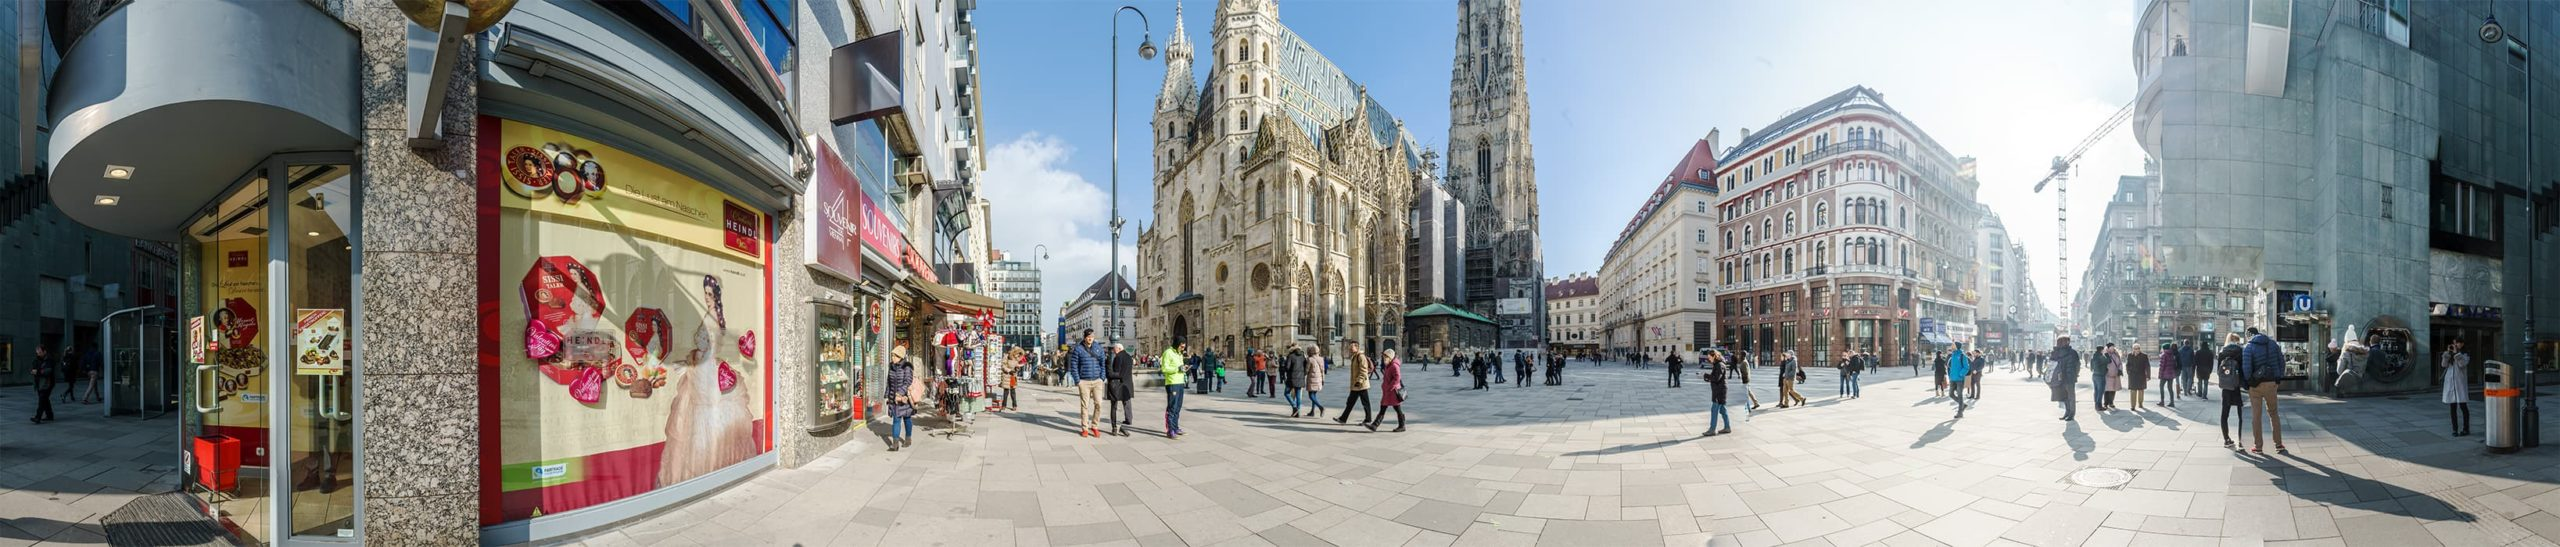 wien-panorama-stephansplatz